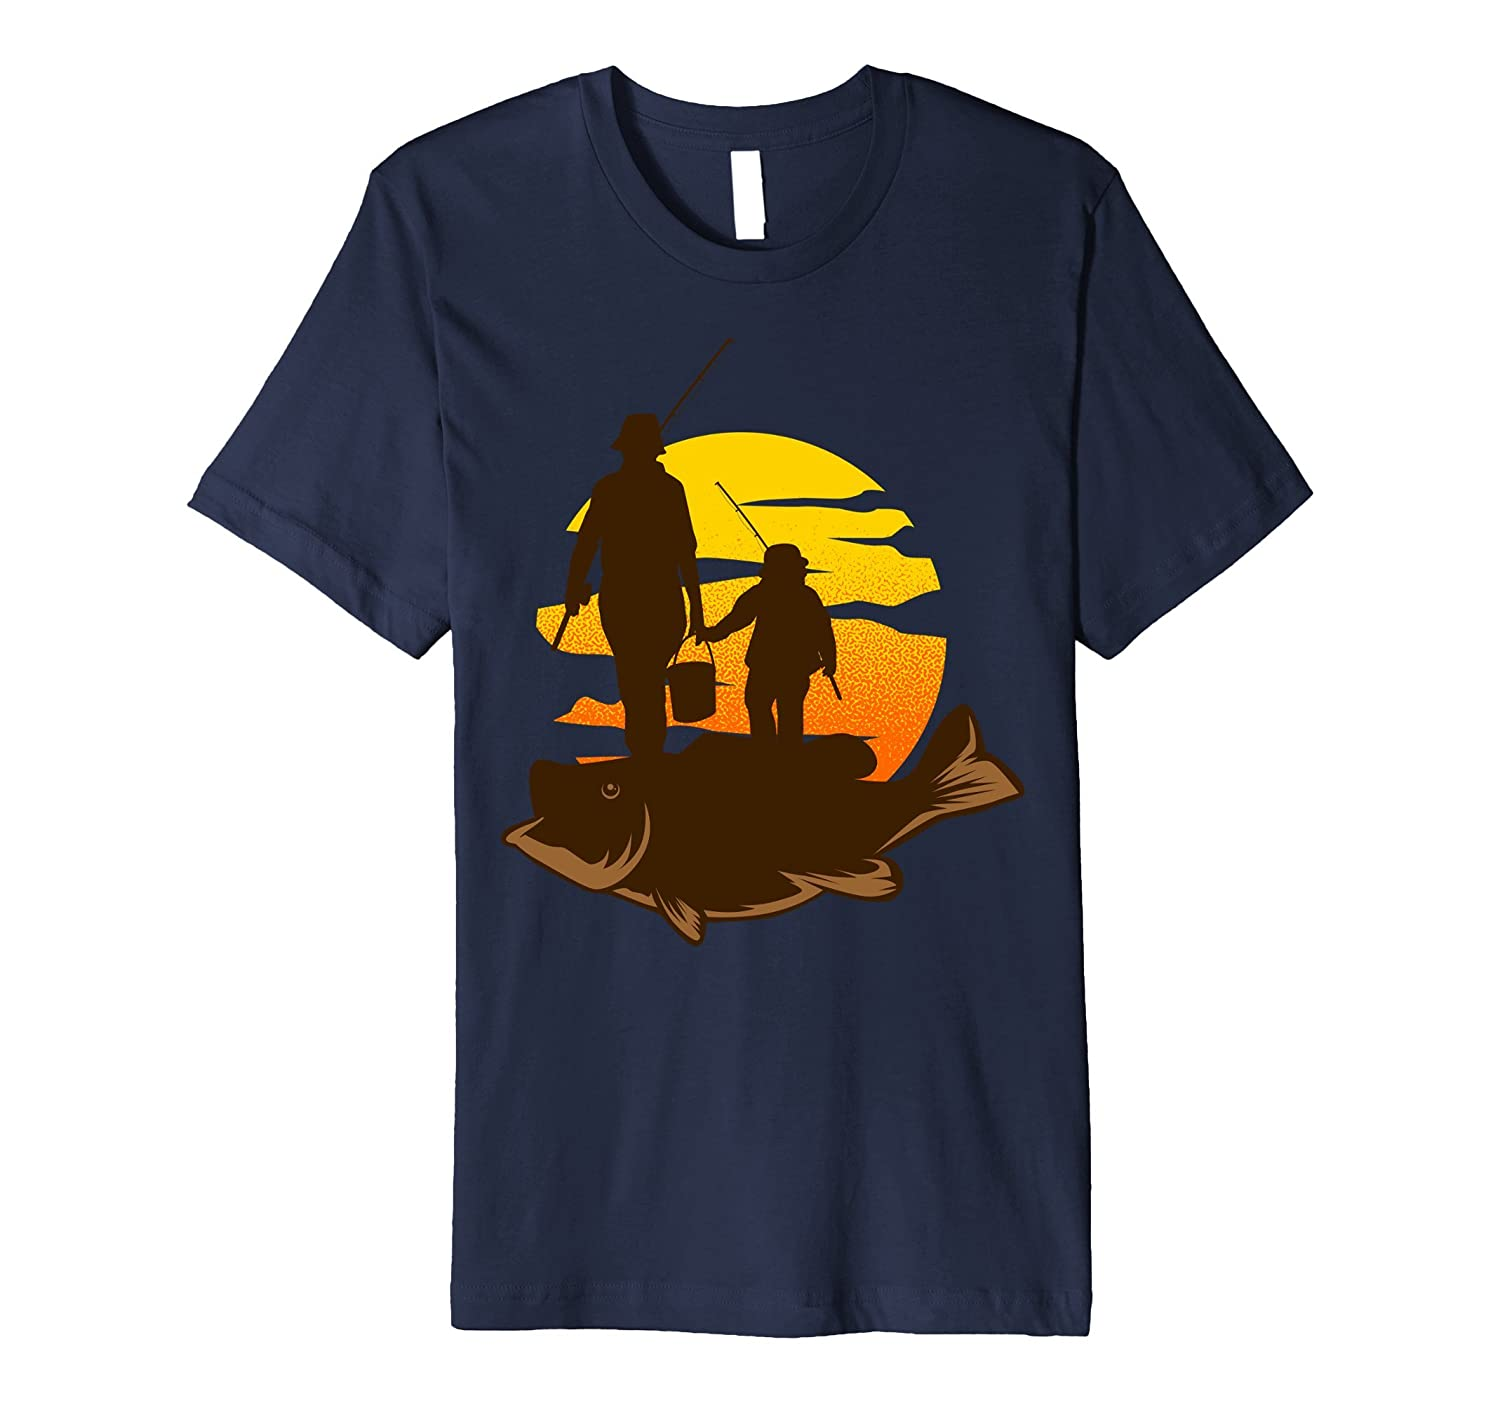 Father and Son Gone Fishing T-shirt cool Tee for fisherman-TJ